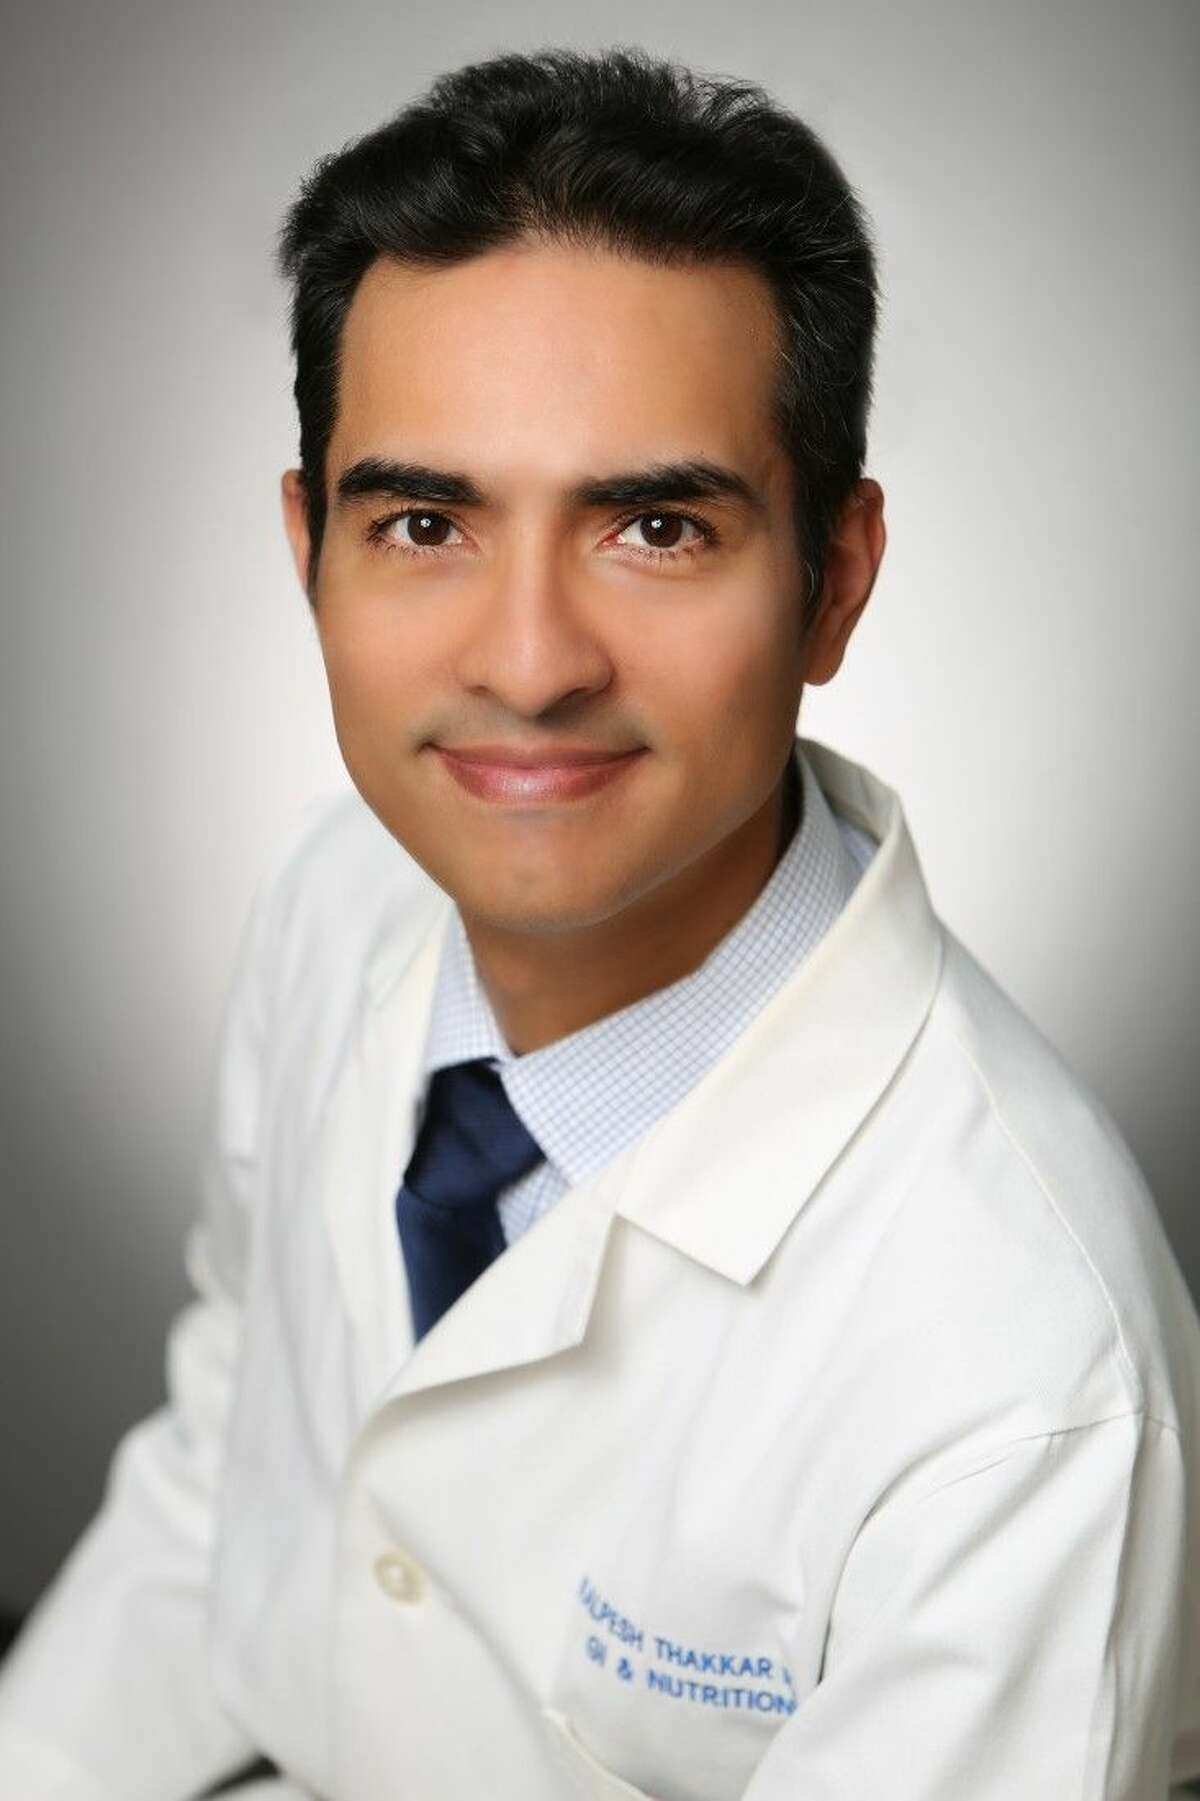 Pictured is pediatric gastroenterologist Kalpesh H. Thakkar, M.D. He joined the Memorial Hermann Medical Group Multi-Specialty Clinic Sugar Land. Dr. Thakkar also sees patients on Wednesdays at Memorial Hermann Medical Group Wharton.